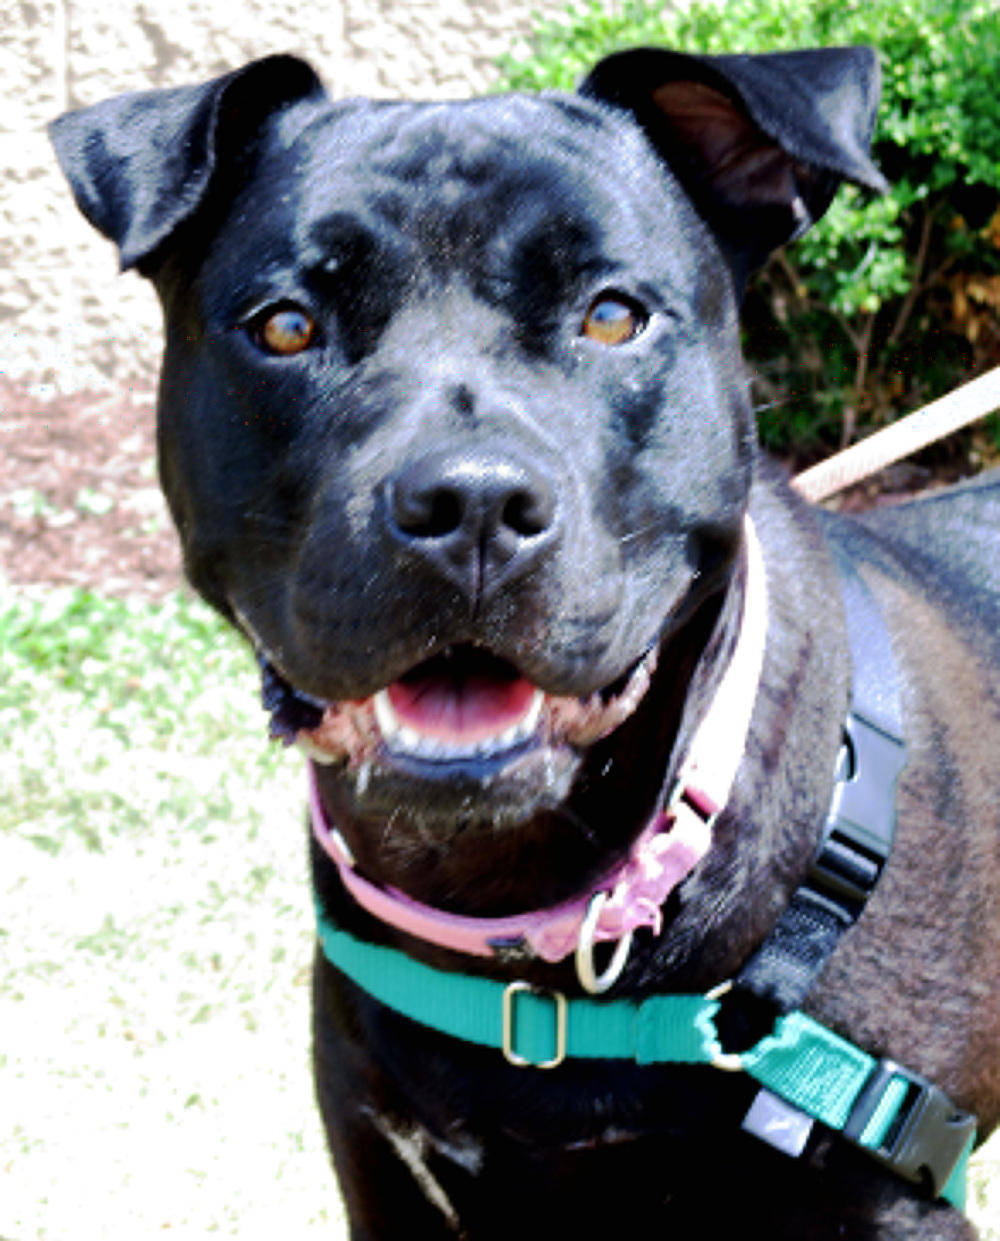 Bella is a gentle giant. She is a 2.5 yr old Mastiff mix. She loves to play with toys and most other dogs but cats are not her thing.  If there are children in the home we recommend that they be older since Bella is a larger gal. Stop in and see this sweet girl today!